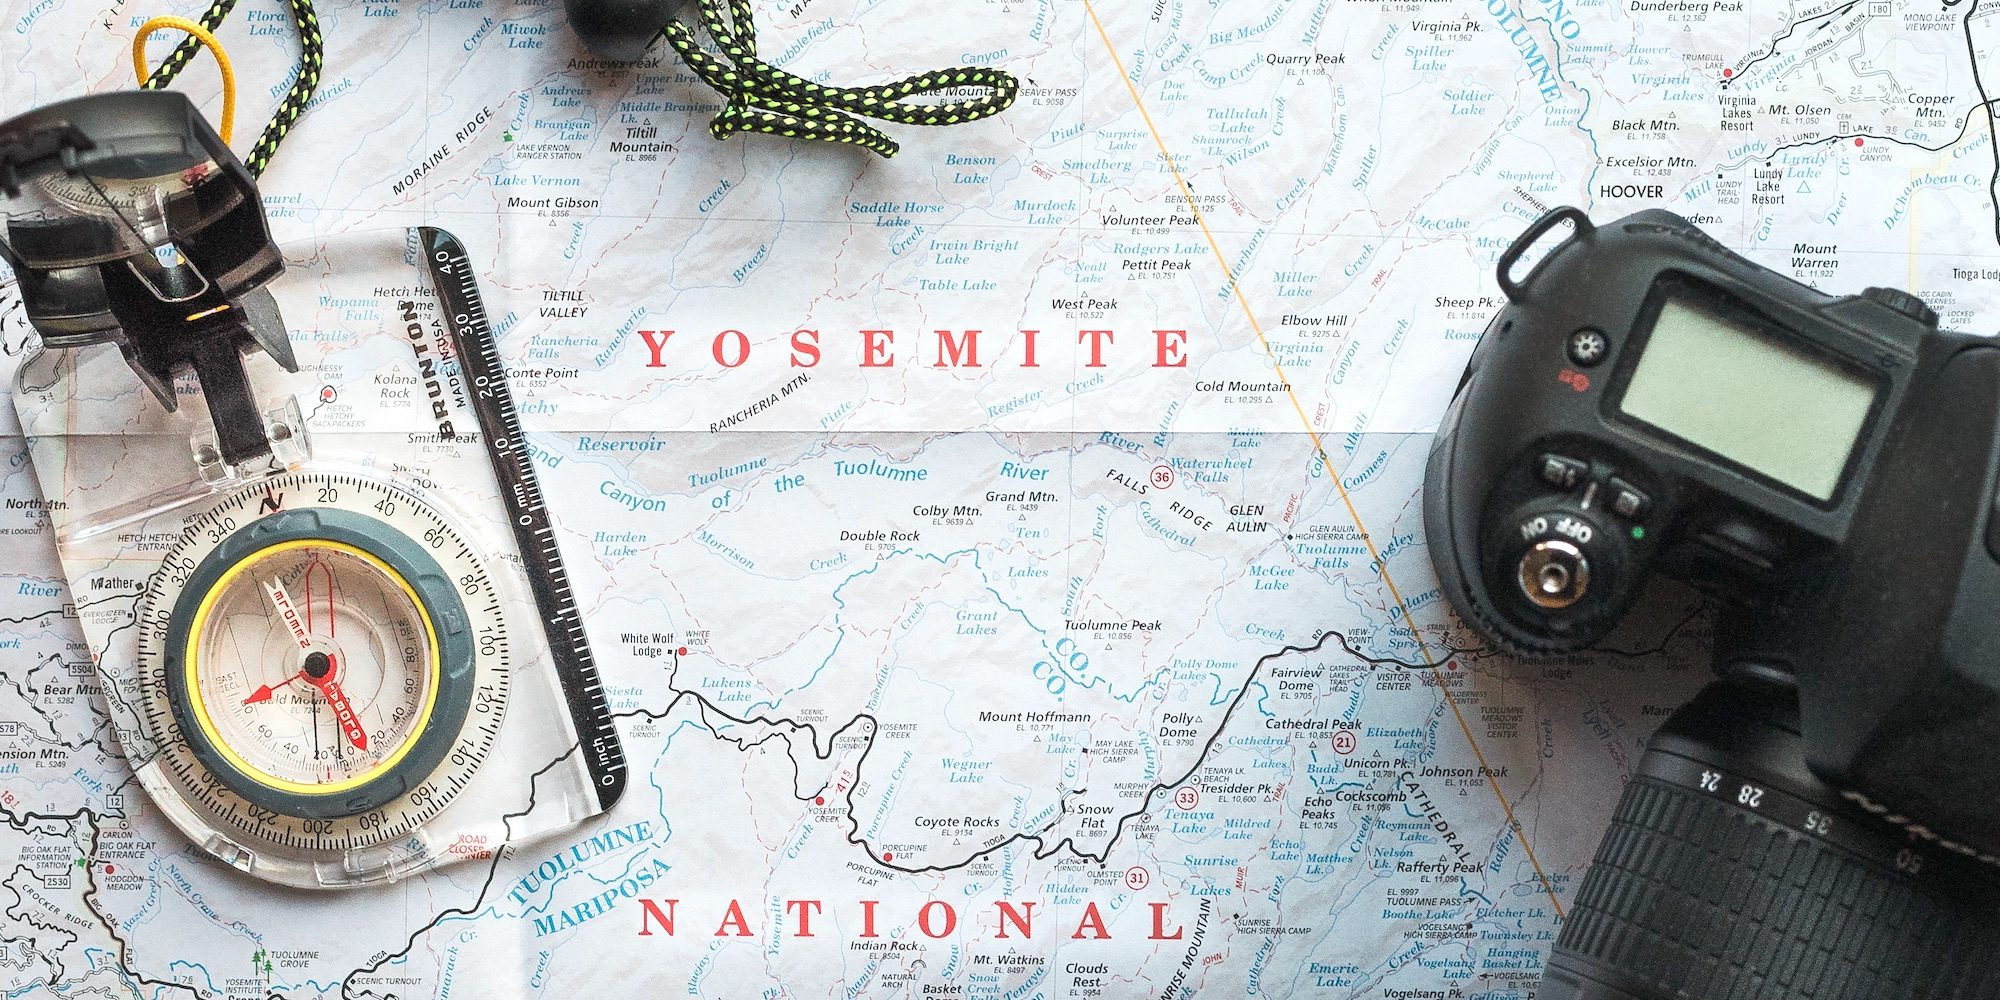 Yosemite national park map with compass and camera sitting on top